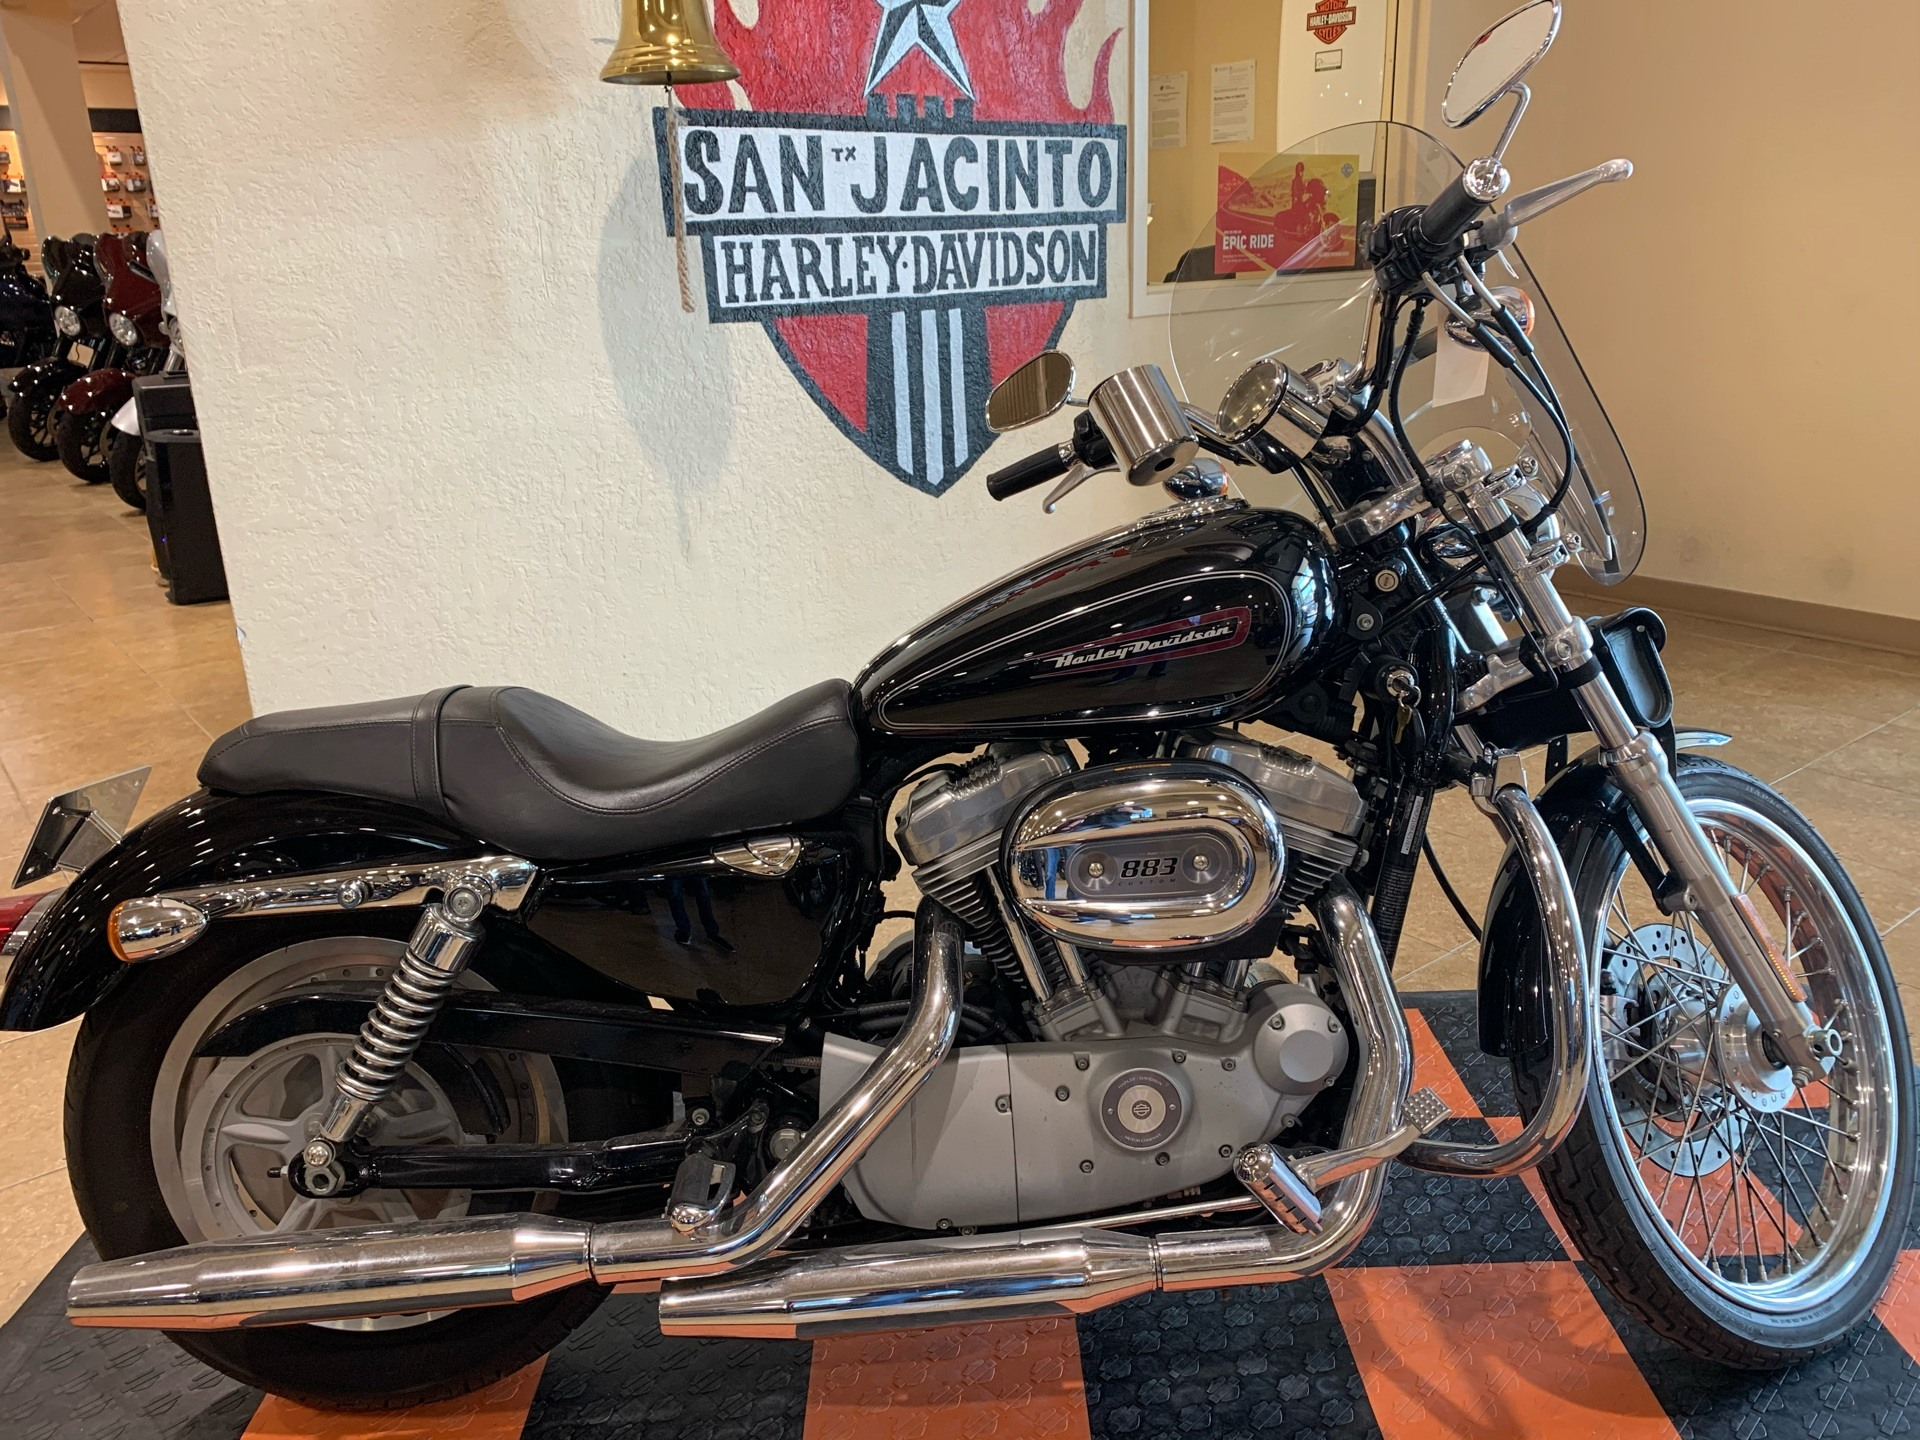 2008 Harley-Davidson Sportster 883 Custom in Pasadena, Texas - Photo 1